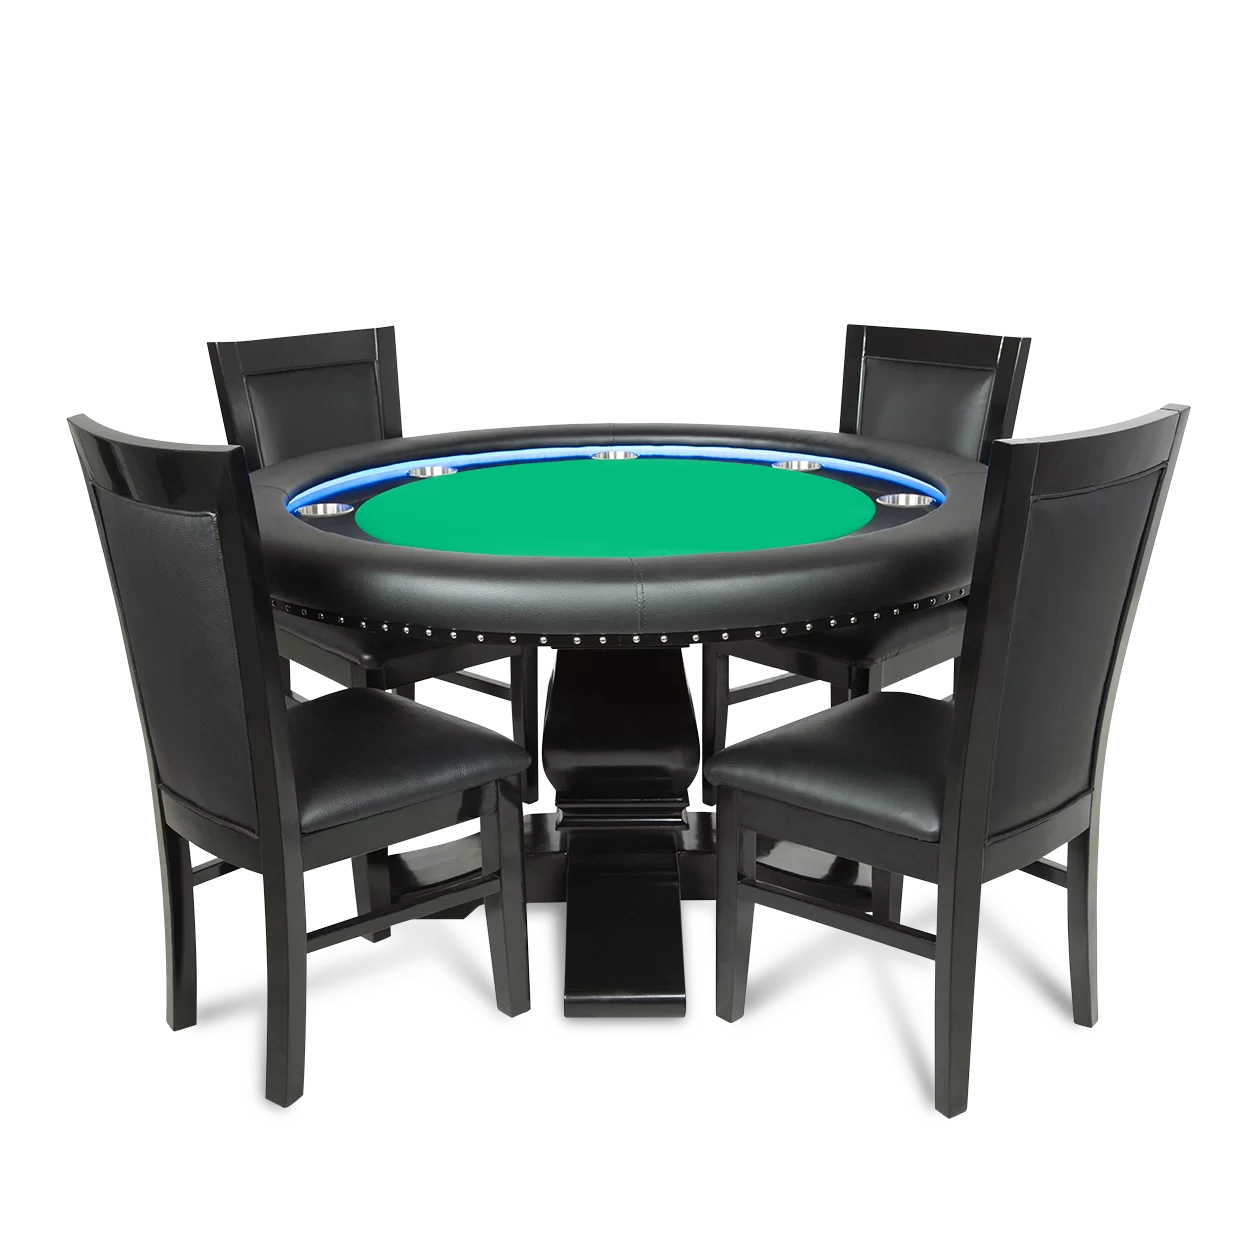 led table and chairs chair lifts for home bbo poker green suited speed cloth ginza